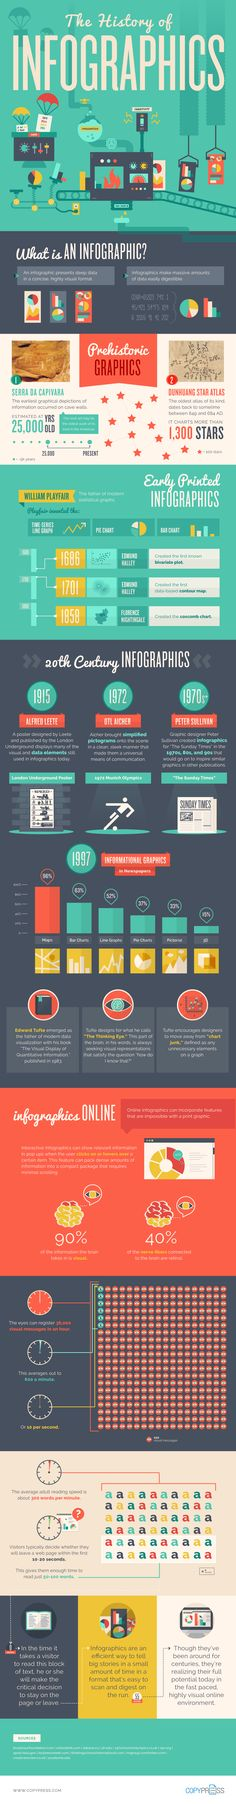 The History of Infographics #infographic #History #Design